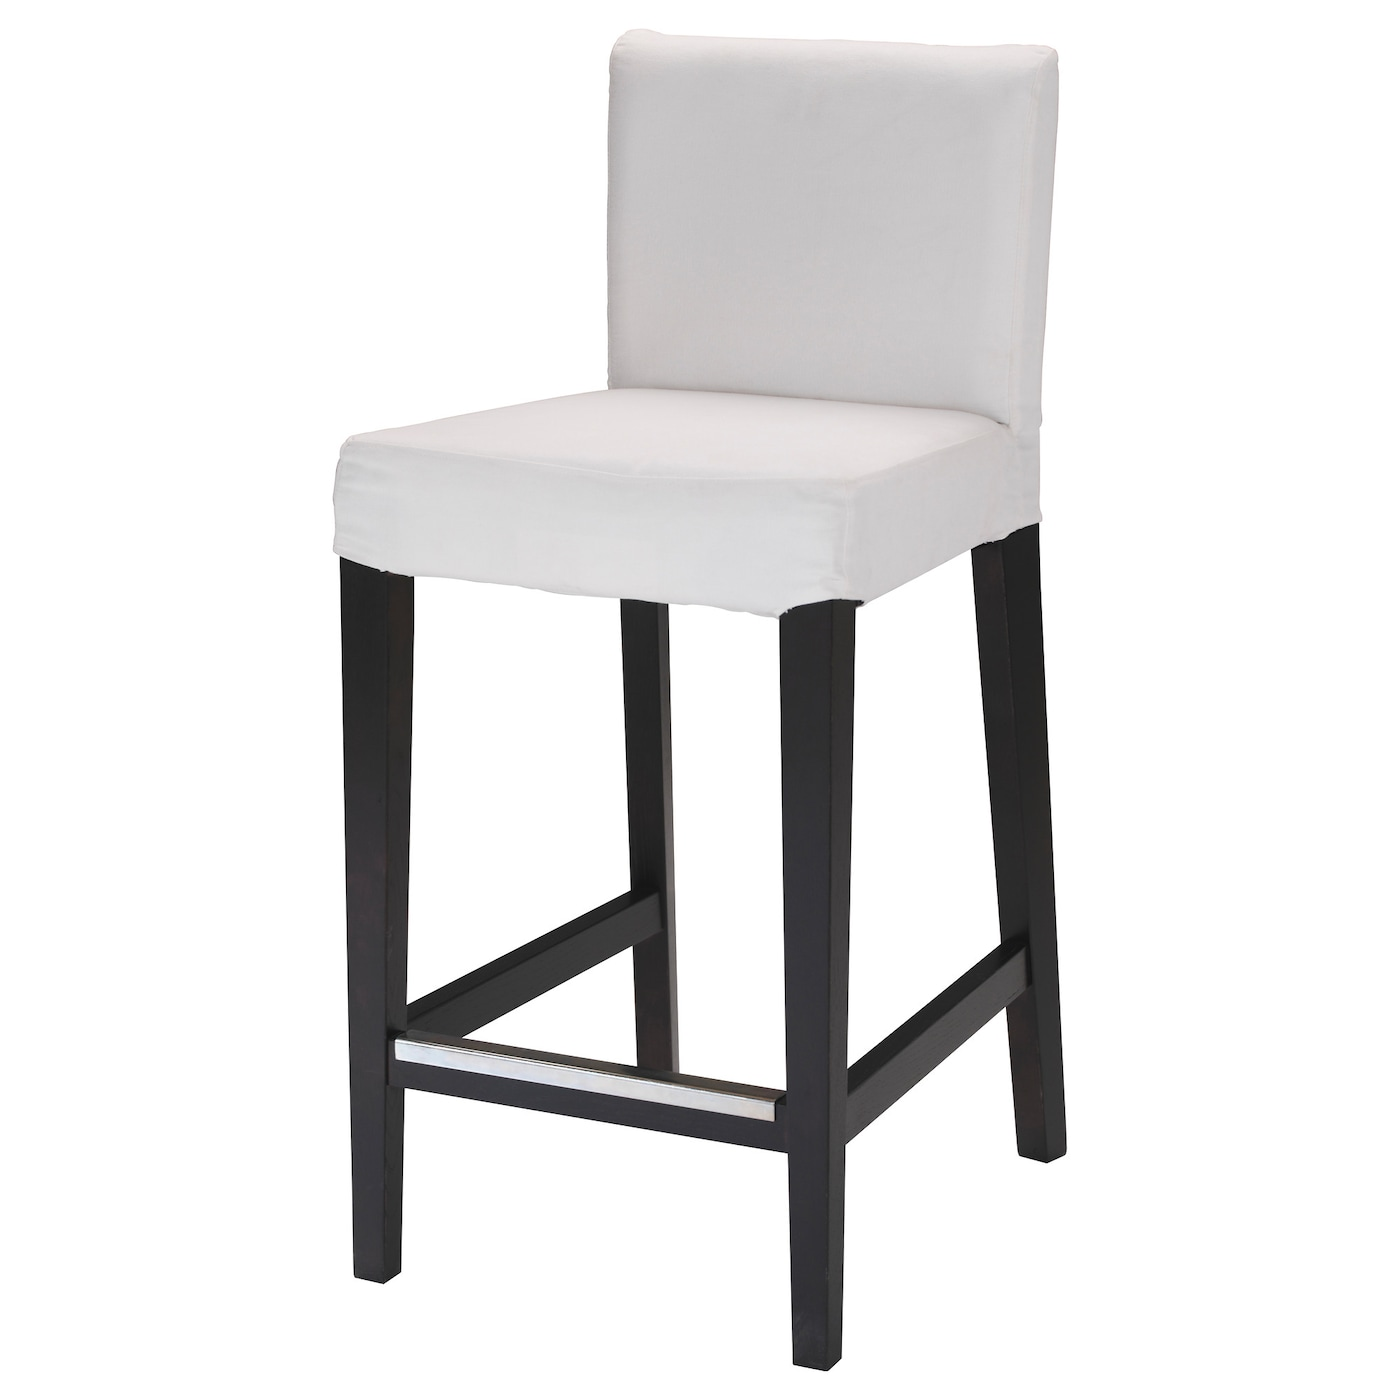 good ikea henriksdal bar stool with backrest frame the padded seat means you sit comfortably. Black Bedroom Furniture Sets. Home Design Ideas